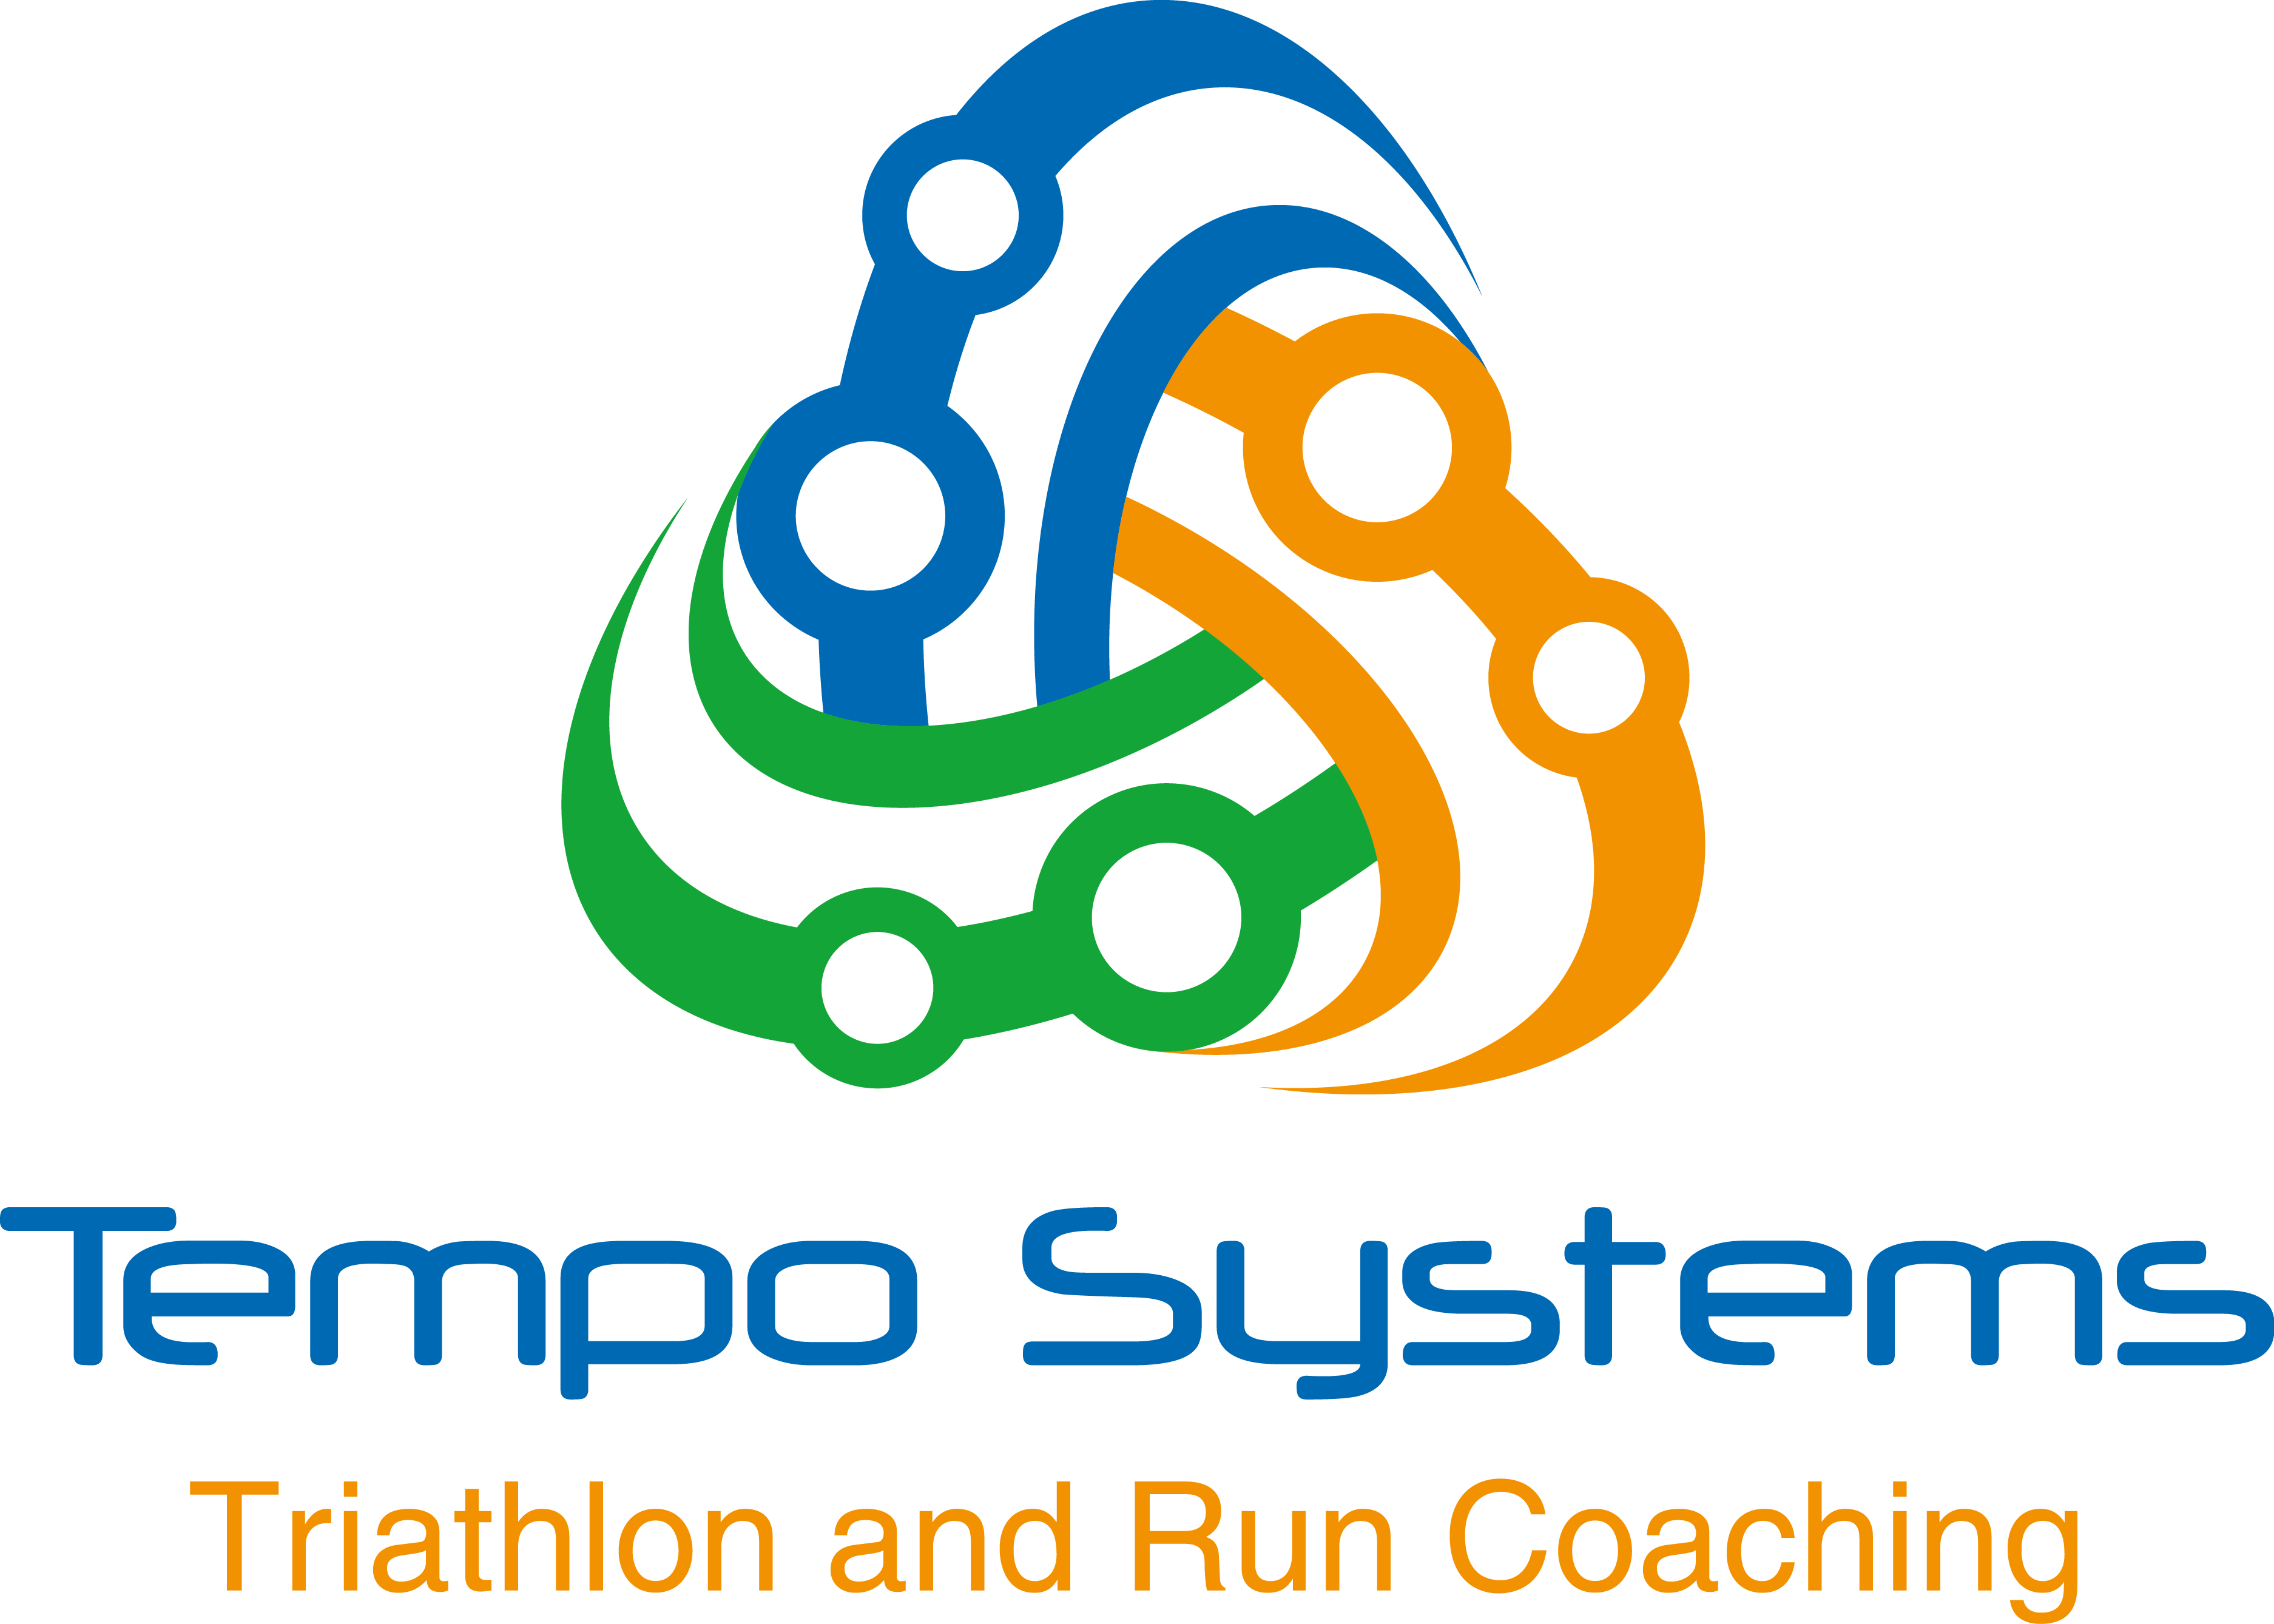 Tempo Systems